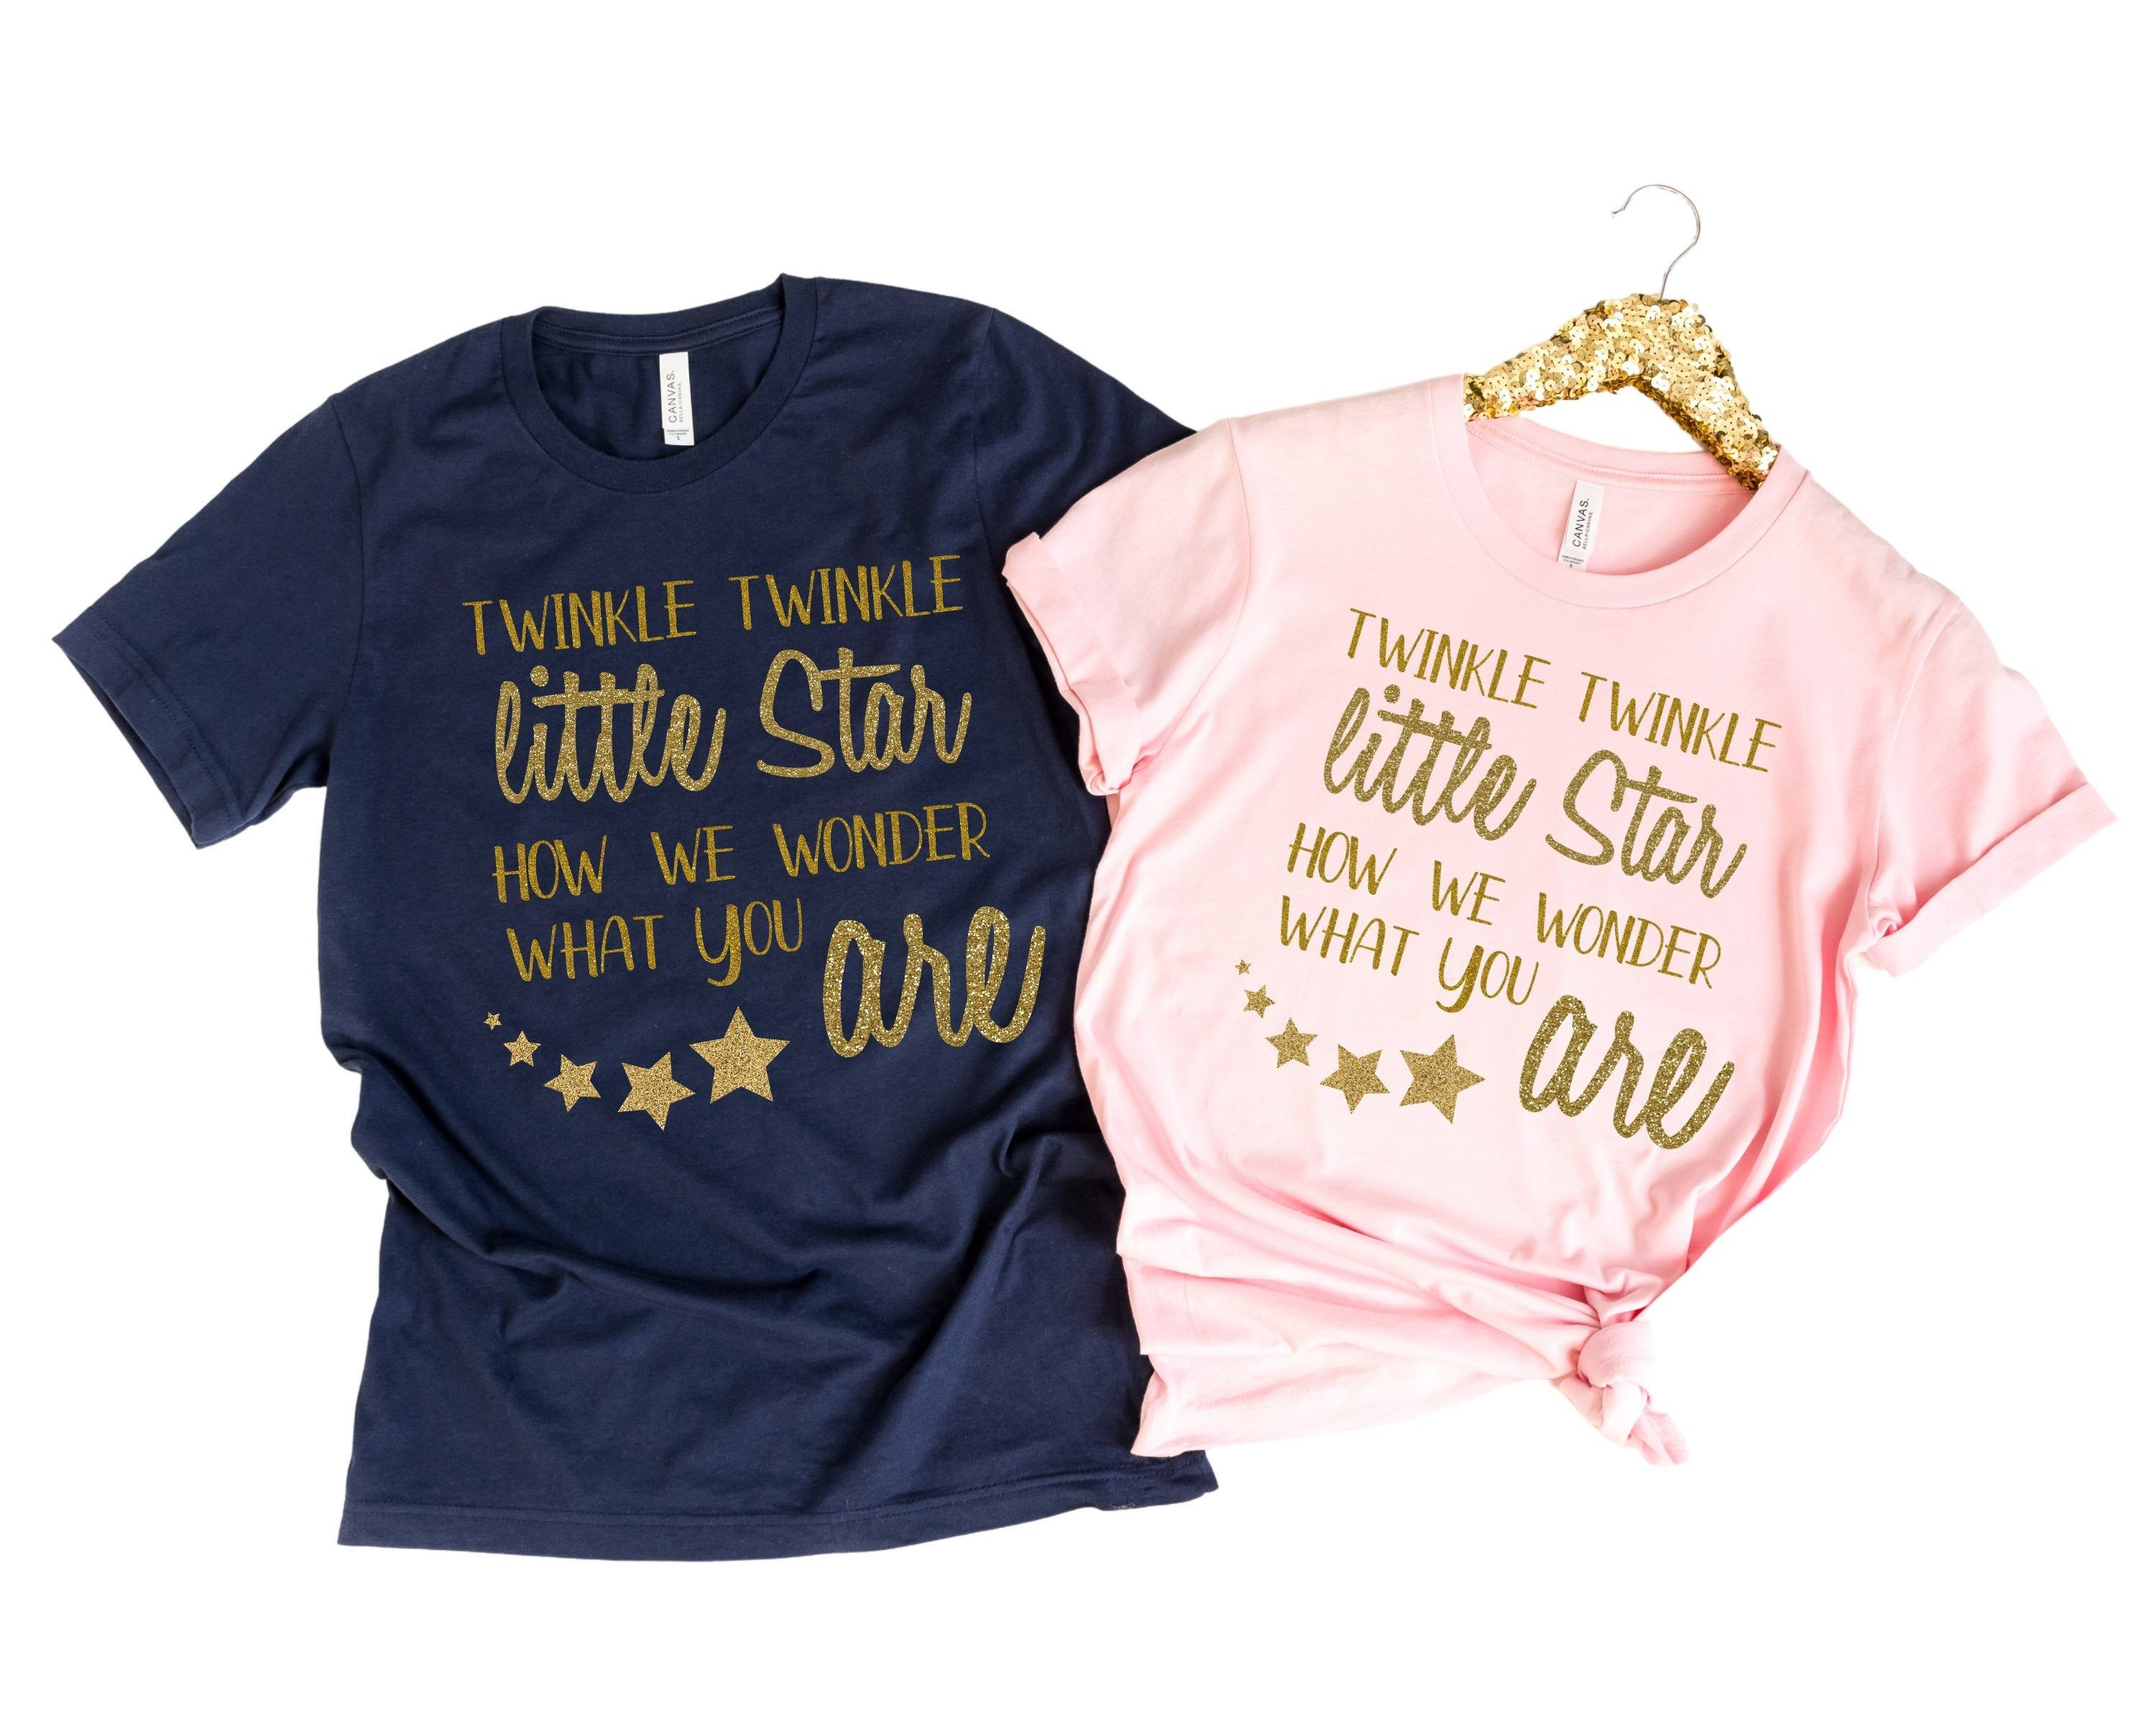 Baby Gender Reveal Matching Tshirt Twinkle Twinkle Little Star Gender Reveal Tshirt Pregnant Couple Match Baby Gender Reveal Gender Reveal Gender Reveal Shirts